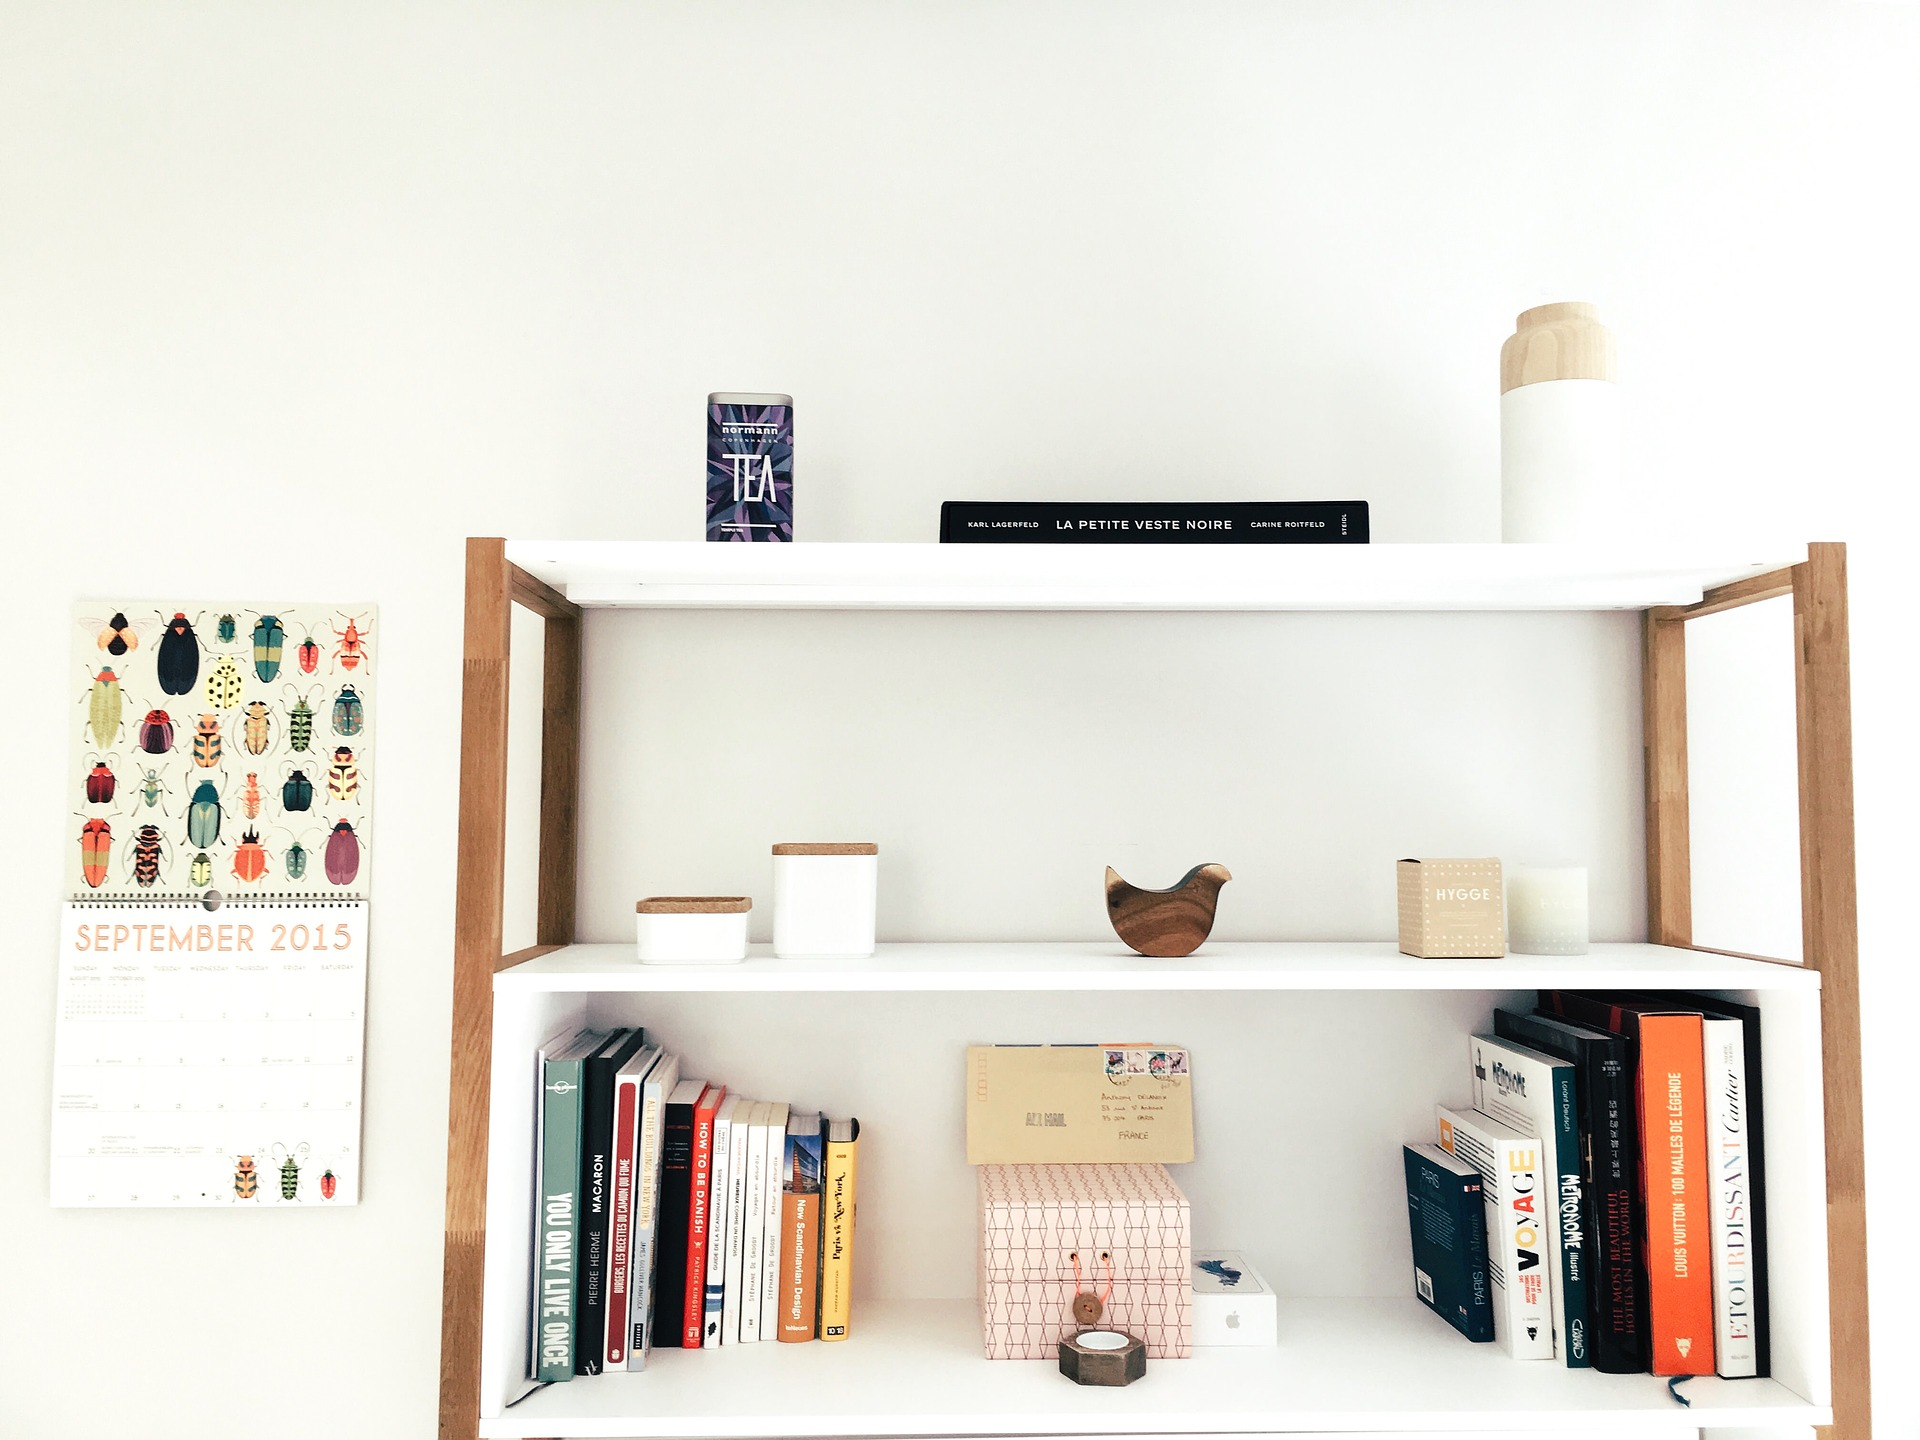 How to effortlessly create an organised home through the use of zoning